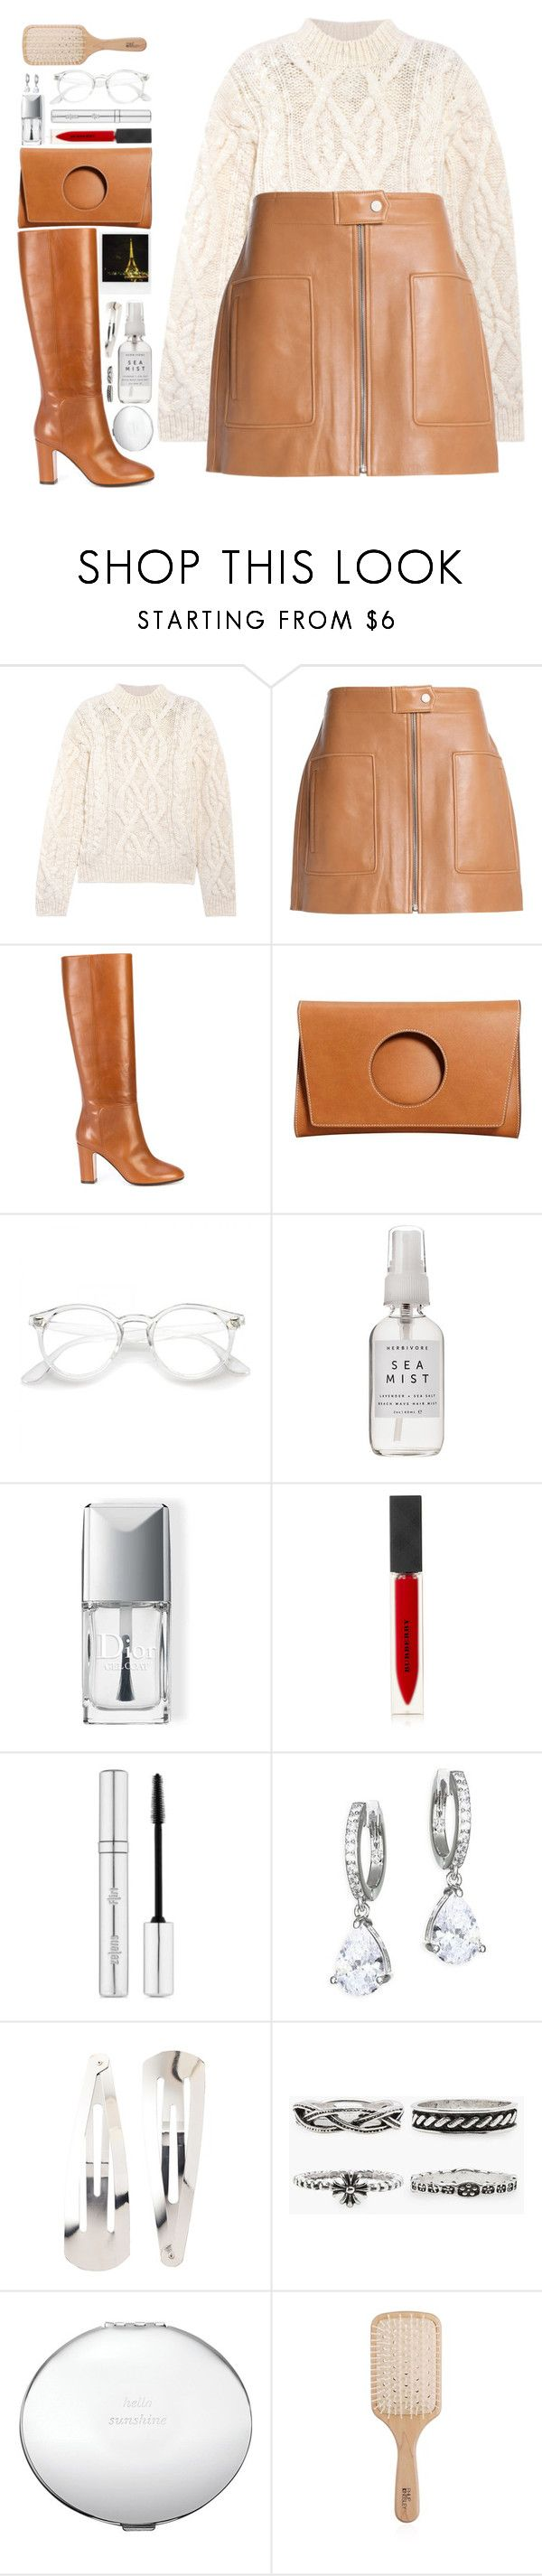 """#1221 Iris"" by blueberrylexie ❤ liked on Polyvore featuring Acne Studios, Helmut Lang, Aquazzura, MANGO, Herbivore, Christian Dior, Polaroid, Burberry, Zelens and Kate Spade"